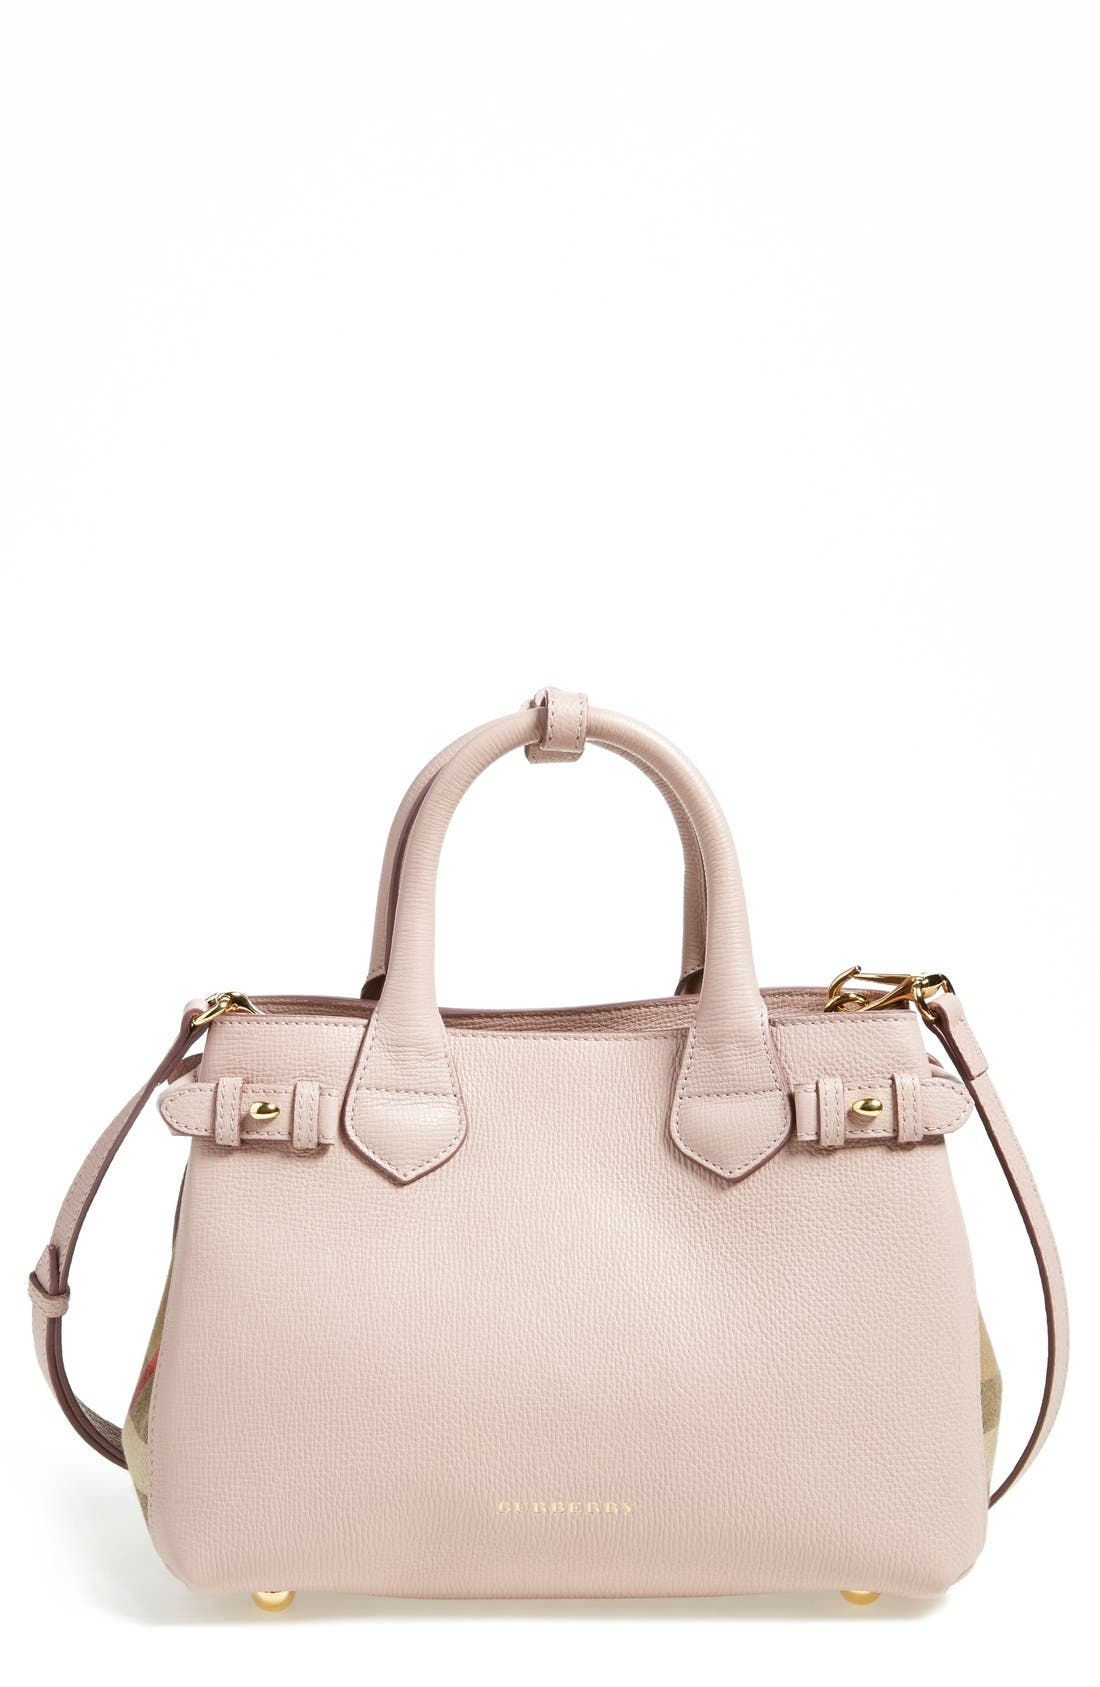 Alternate Image 1 Selected - Burberry 'Small Banner' Leather Tote